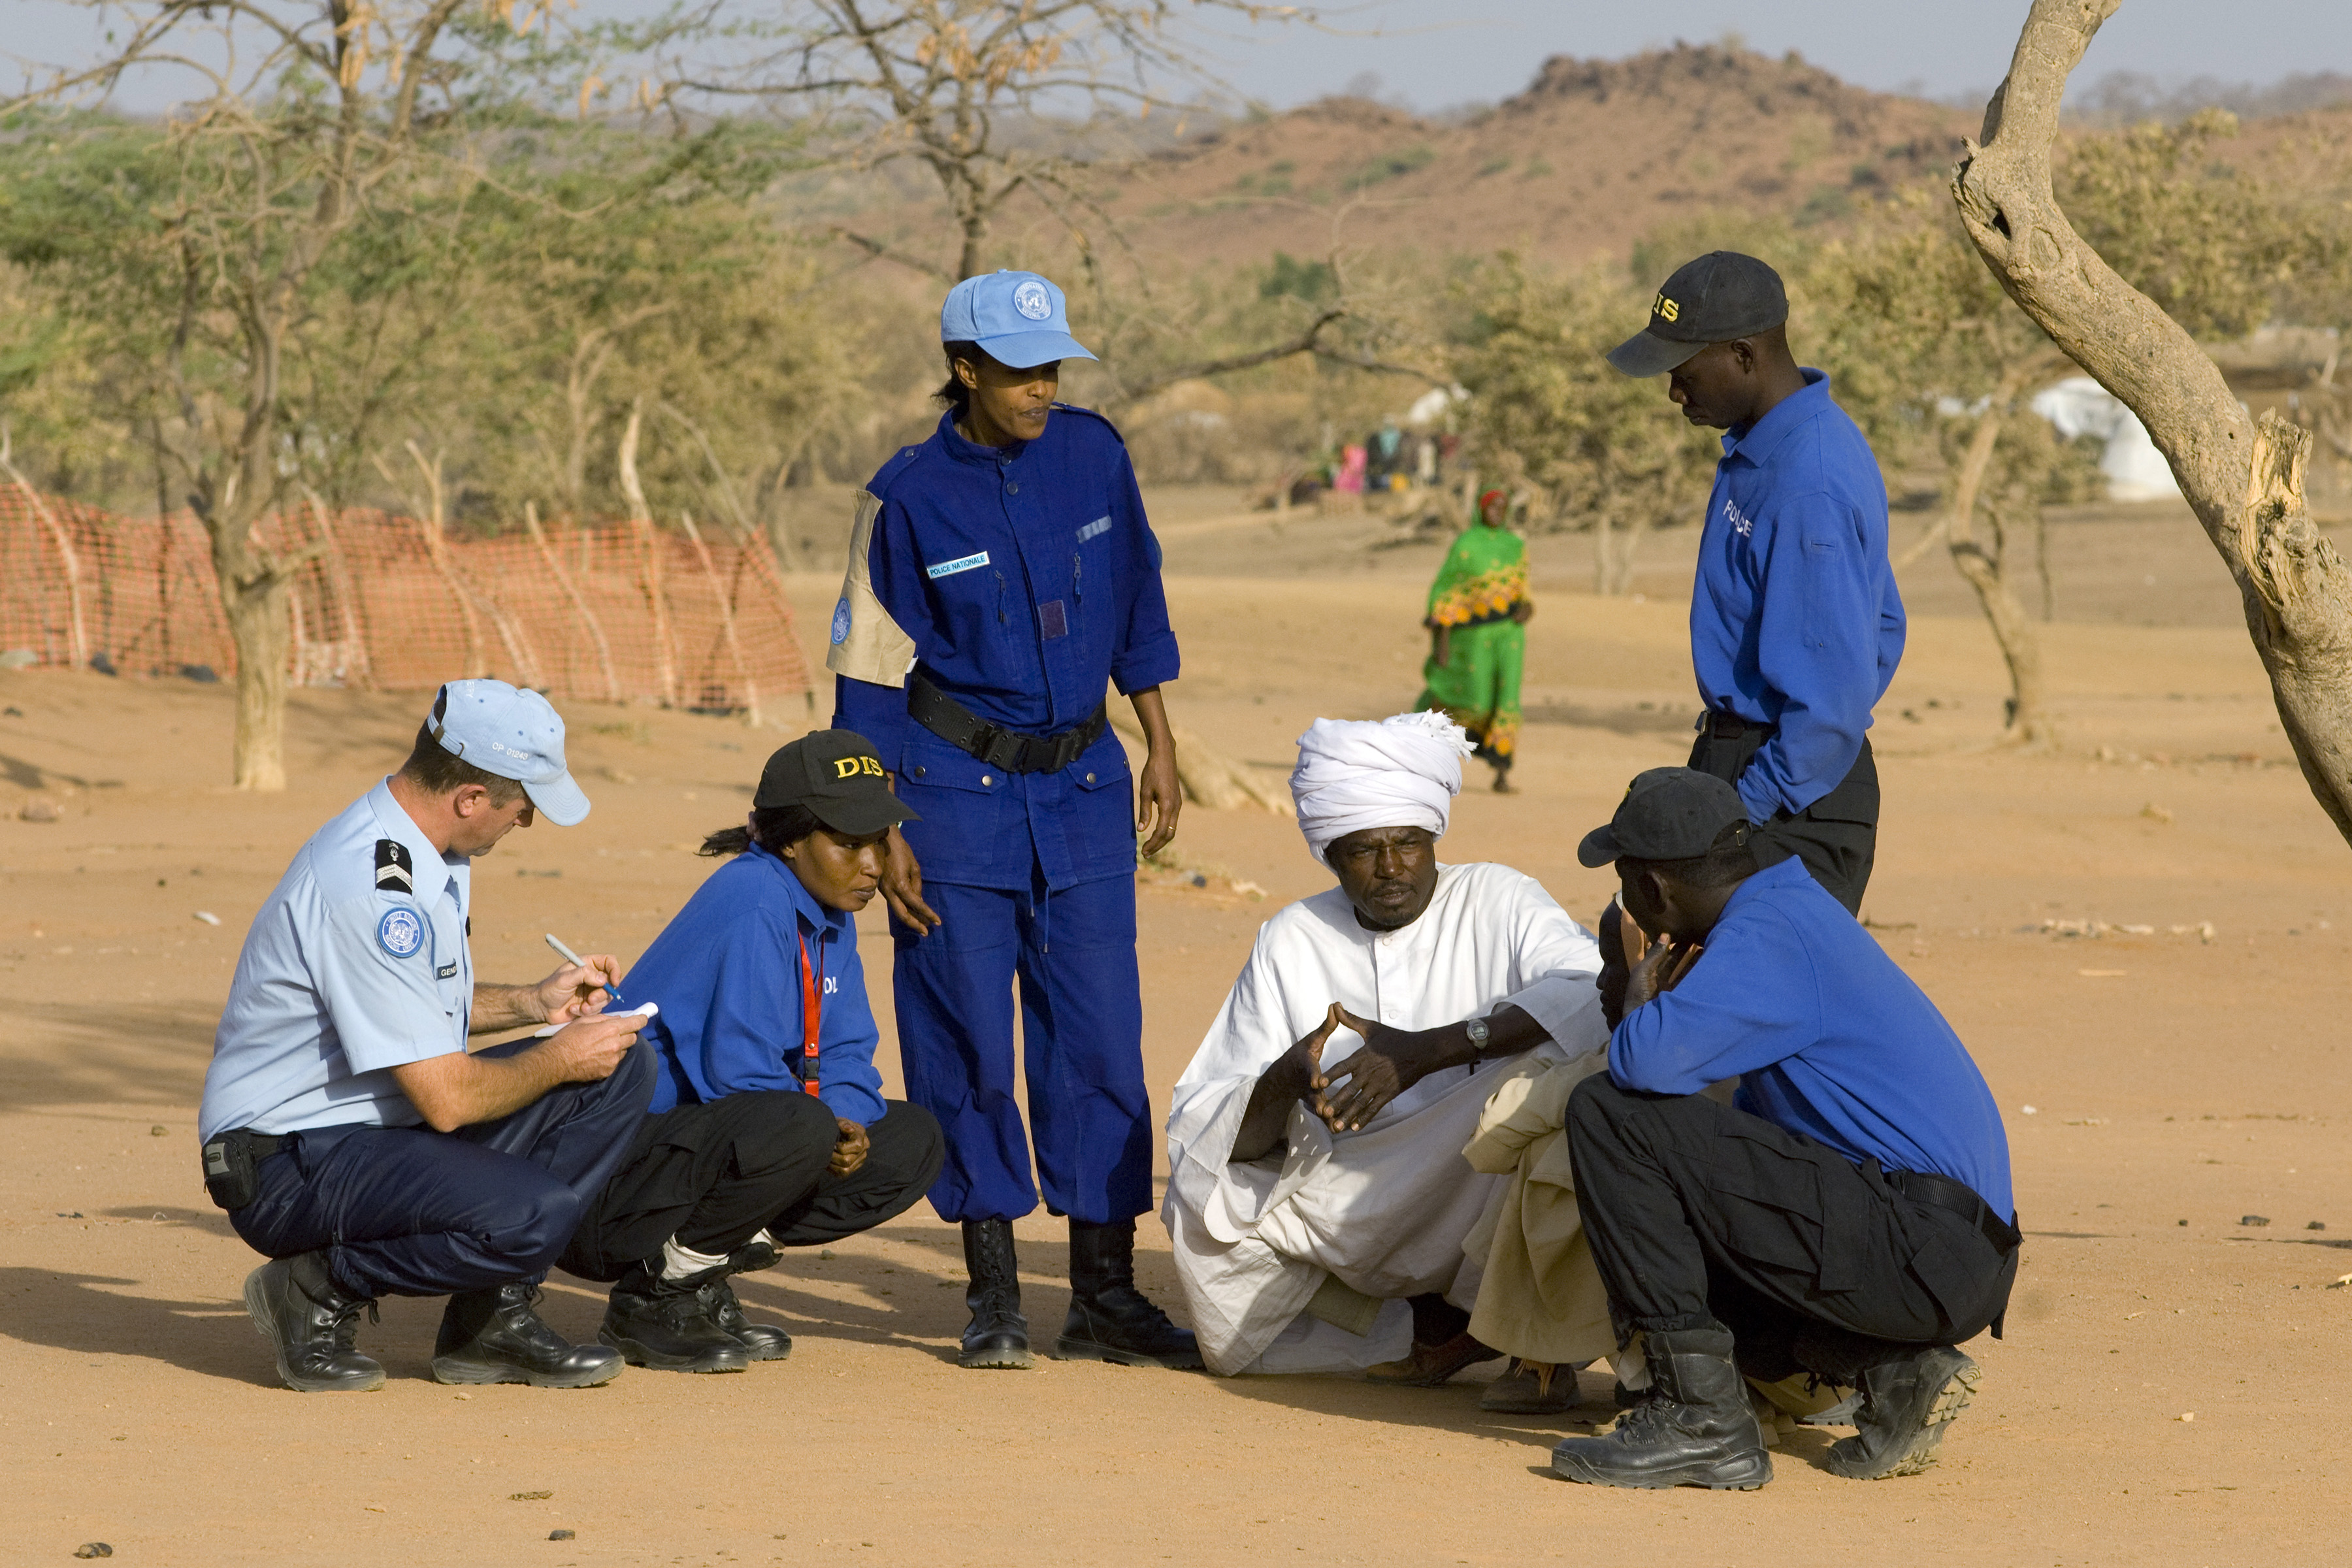 united nations field officer - HD3600×2400